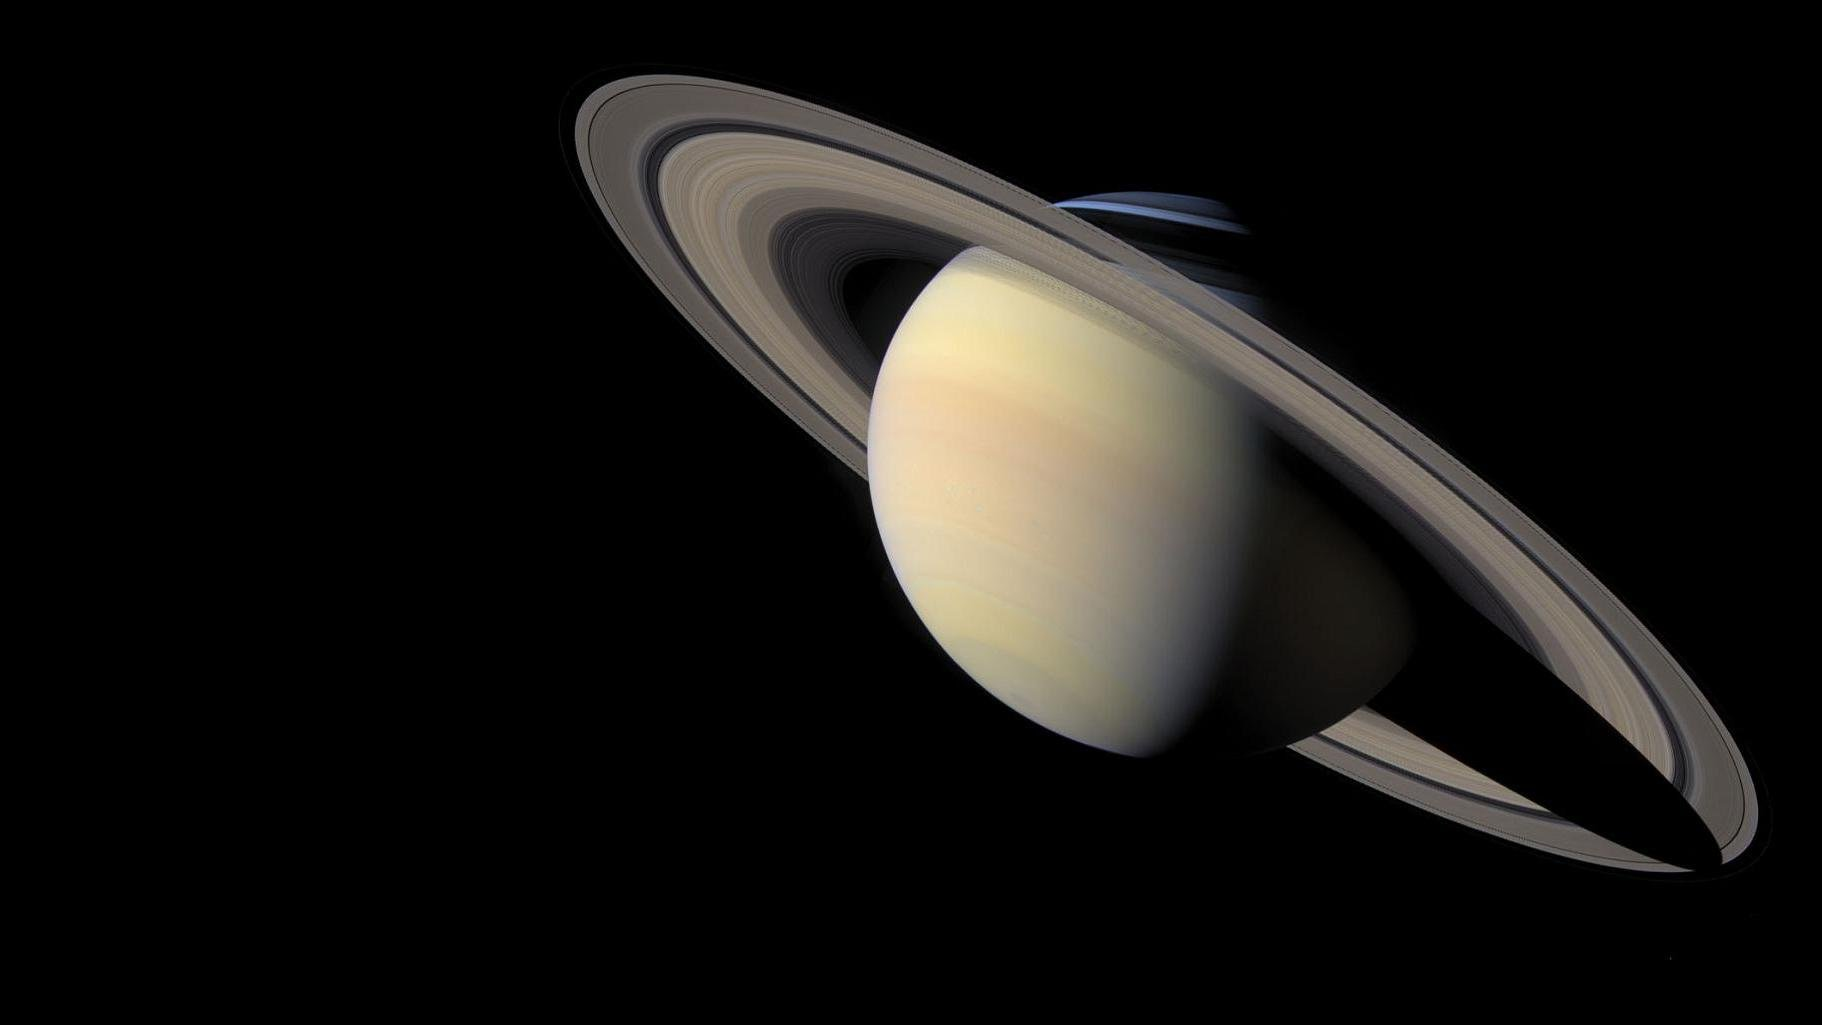 Wallpaper saturno wallpapers -  Saturn Wallpaper Hd Photo 16